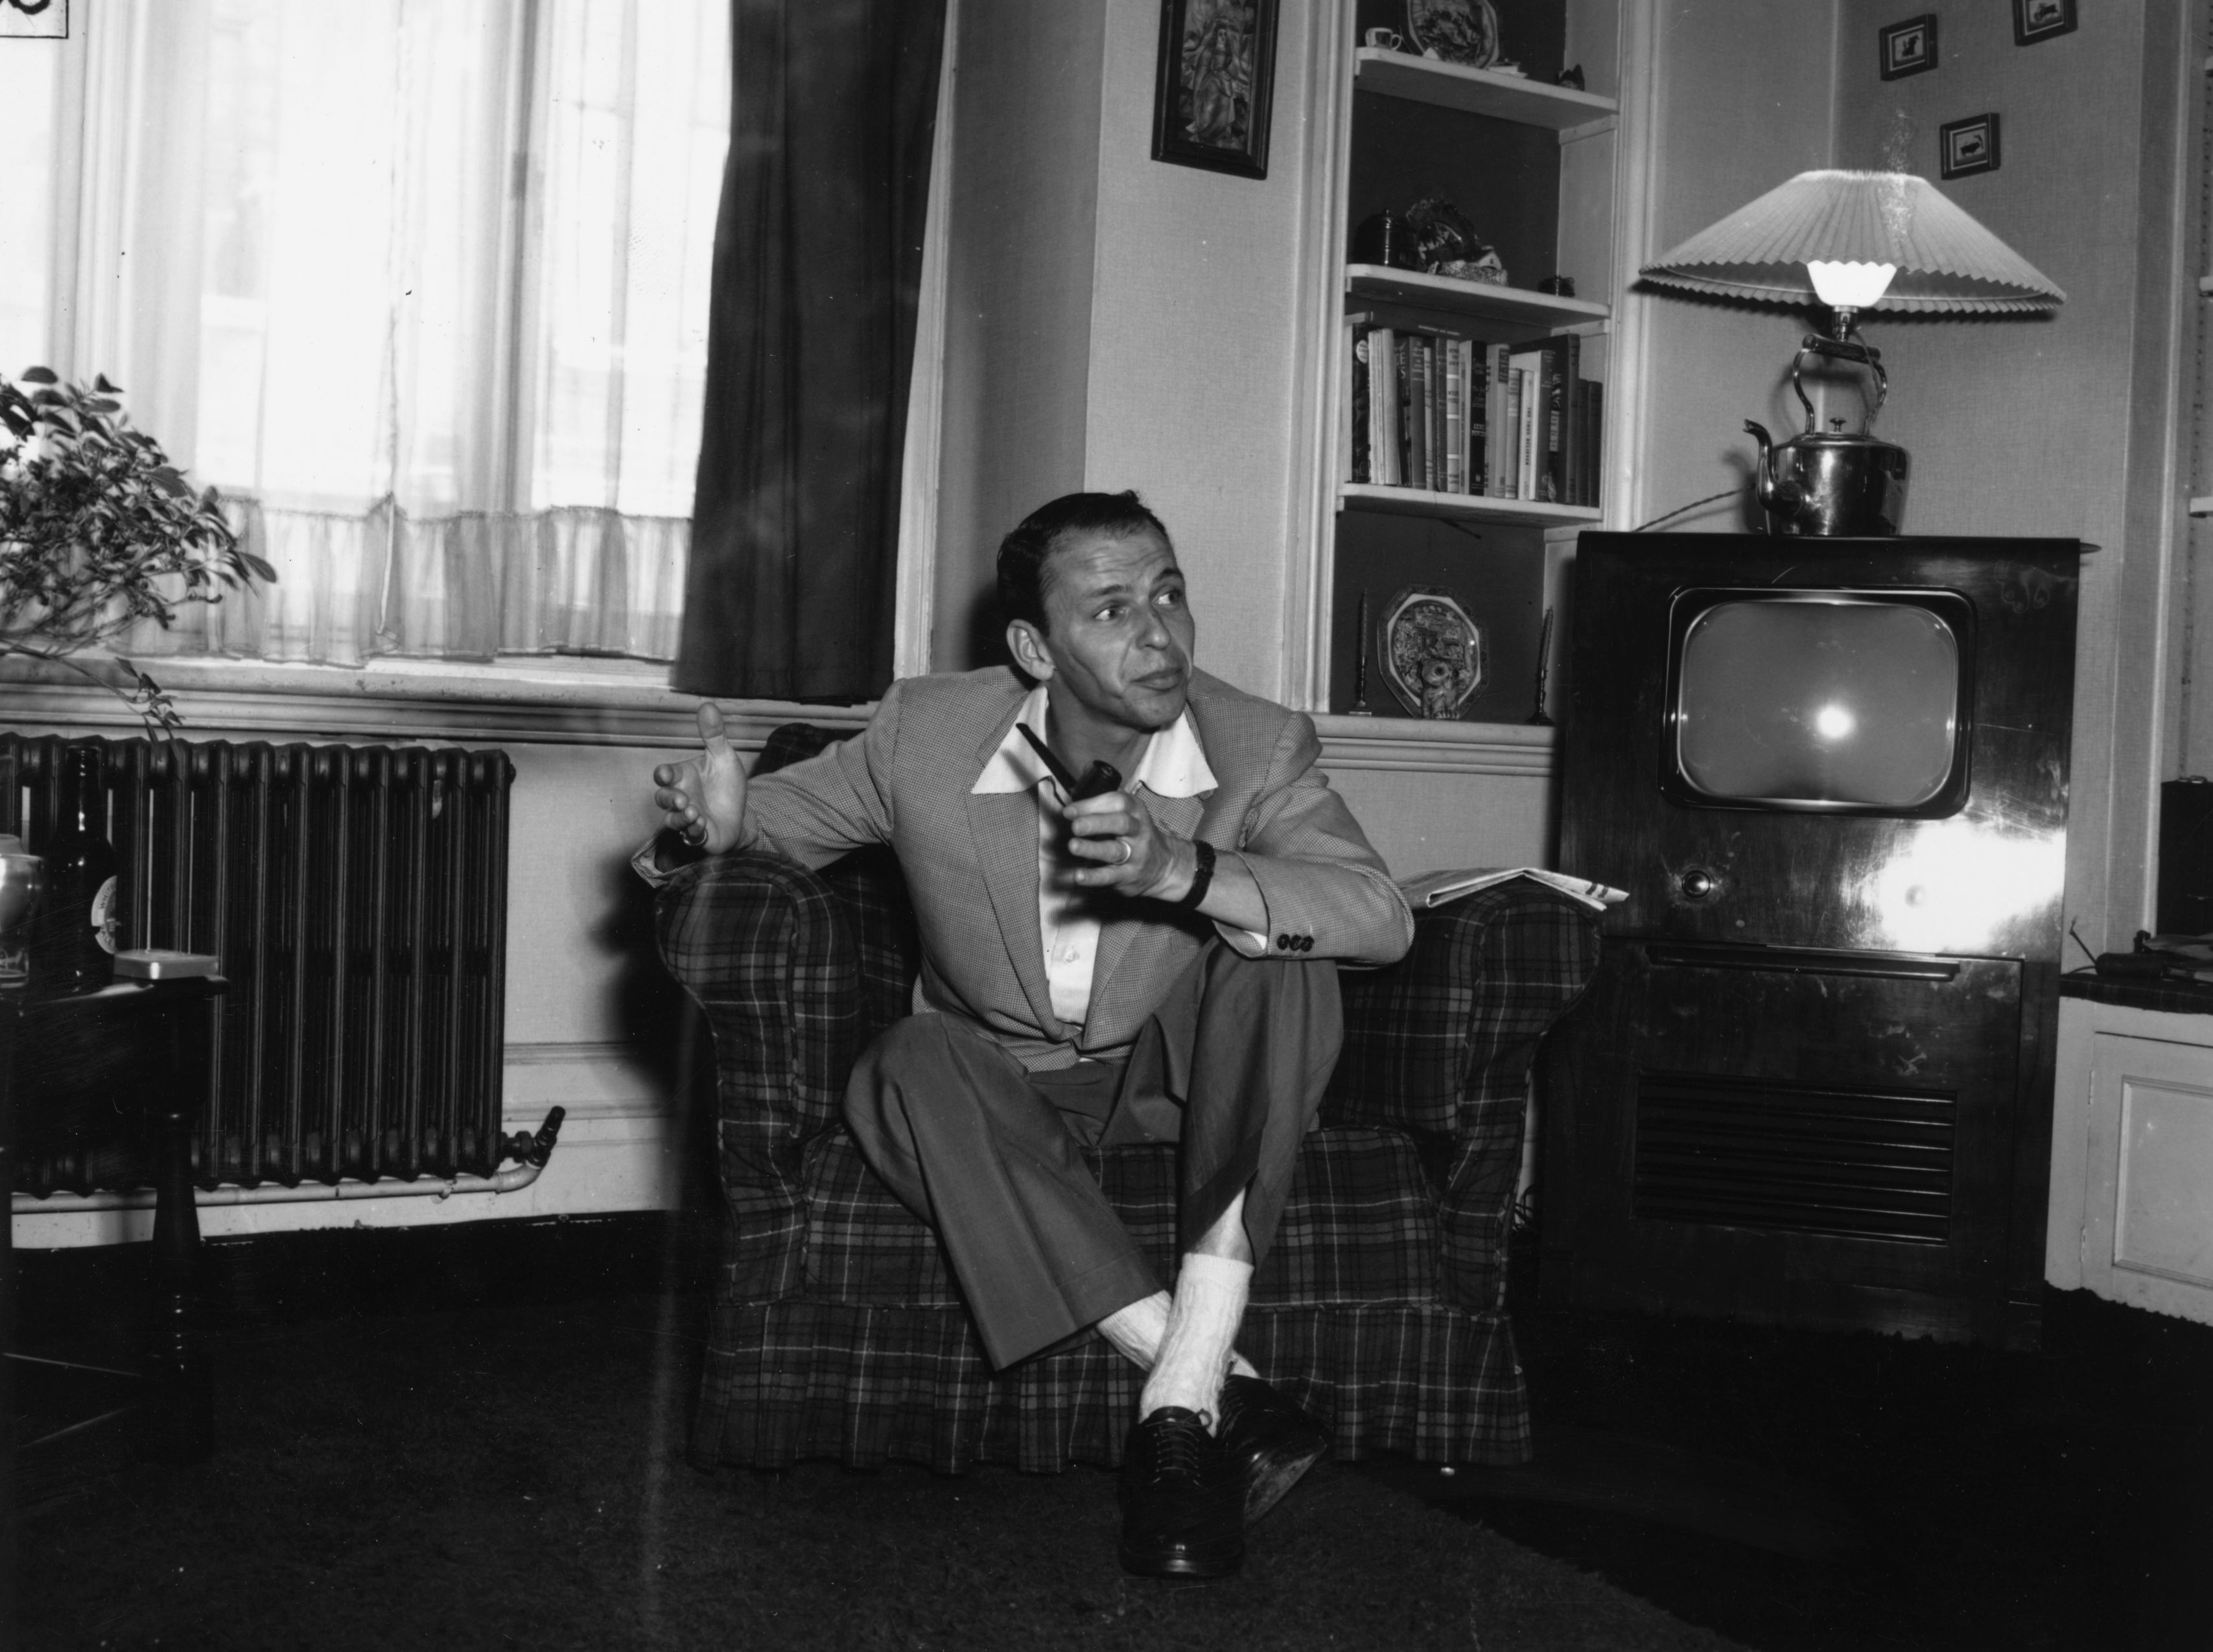 29th June 1953: Popular American singer Frank Sinatra relaxing with a pipe at his flat in Mayfair, London, before his concert at the Palladium. (Photo by R. Mitchell/Express/Getty Images)